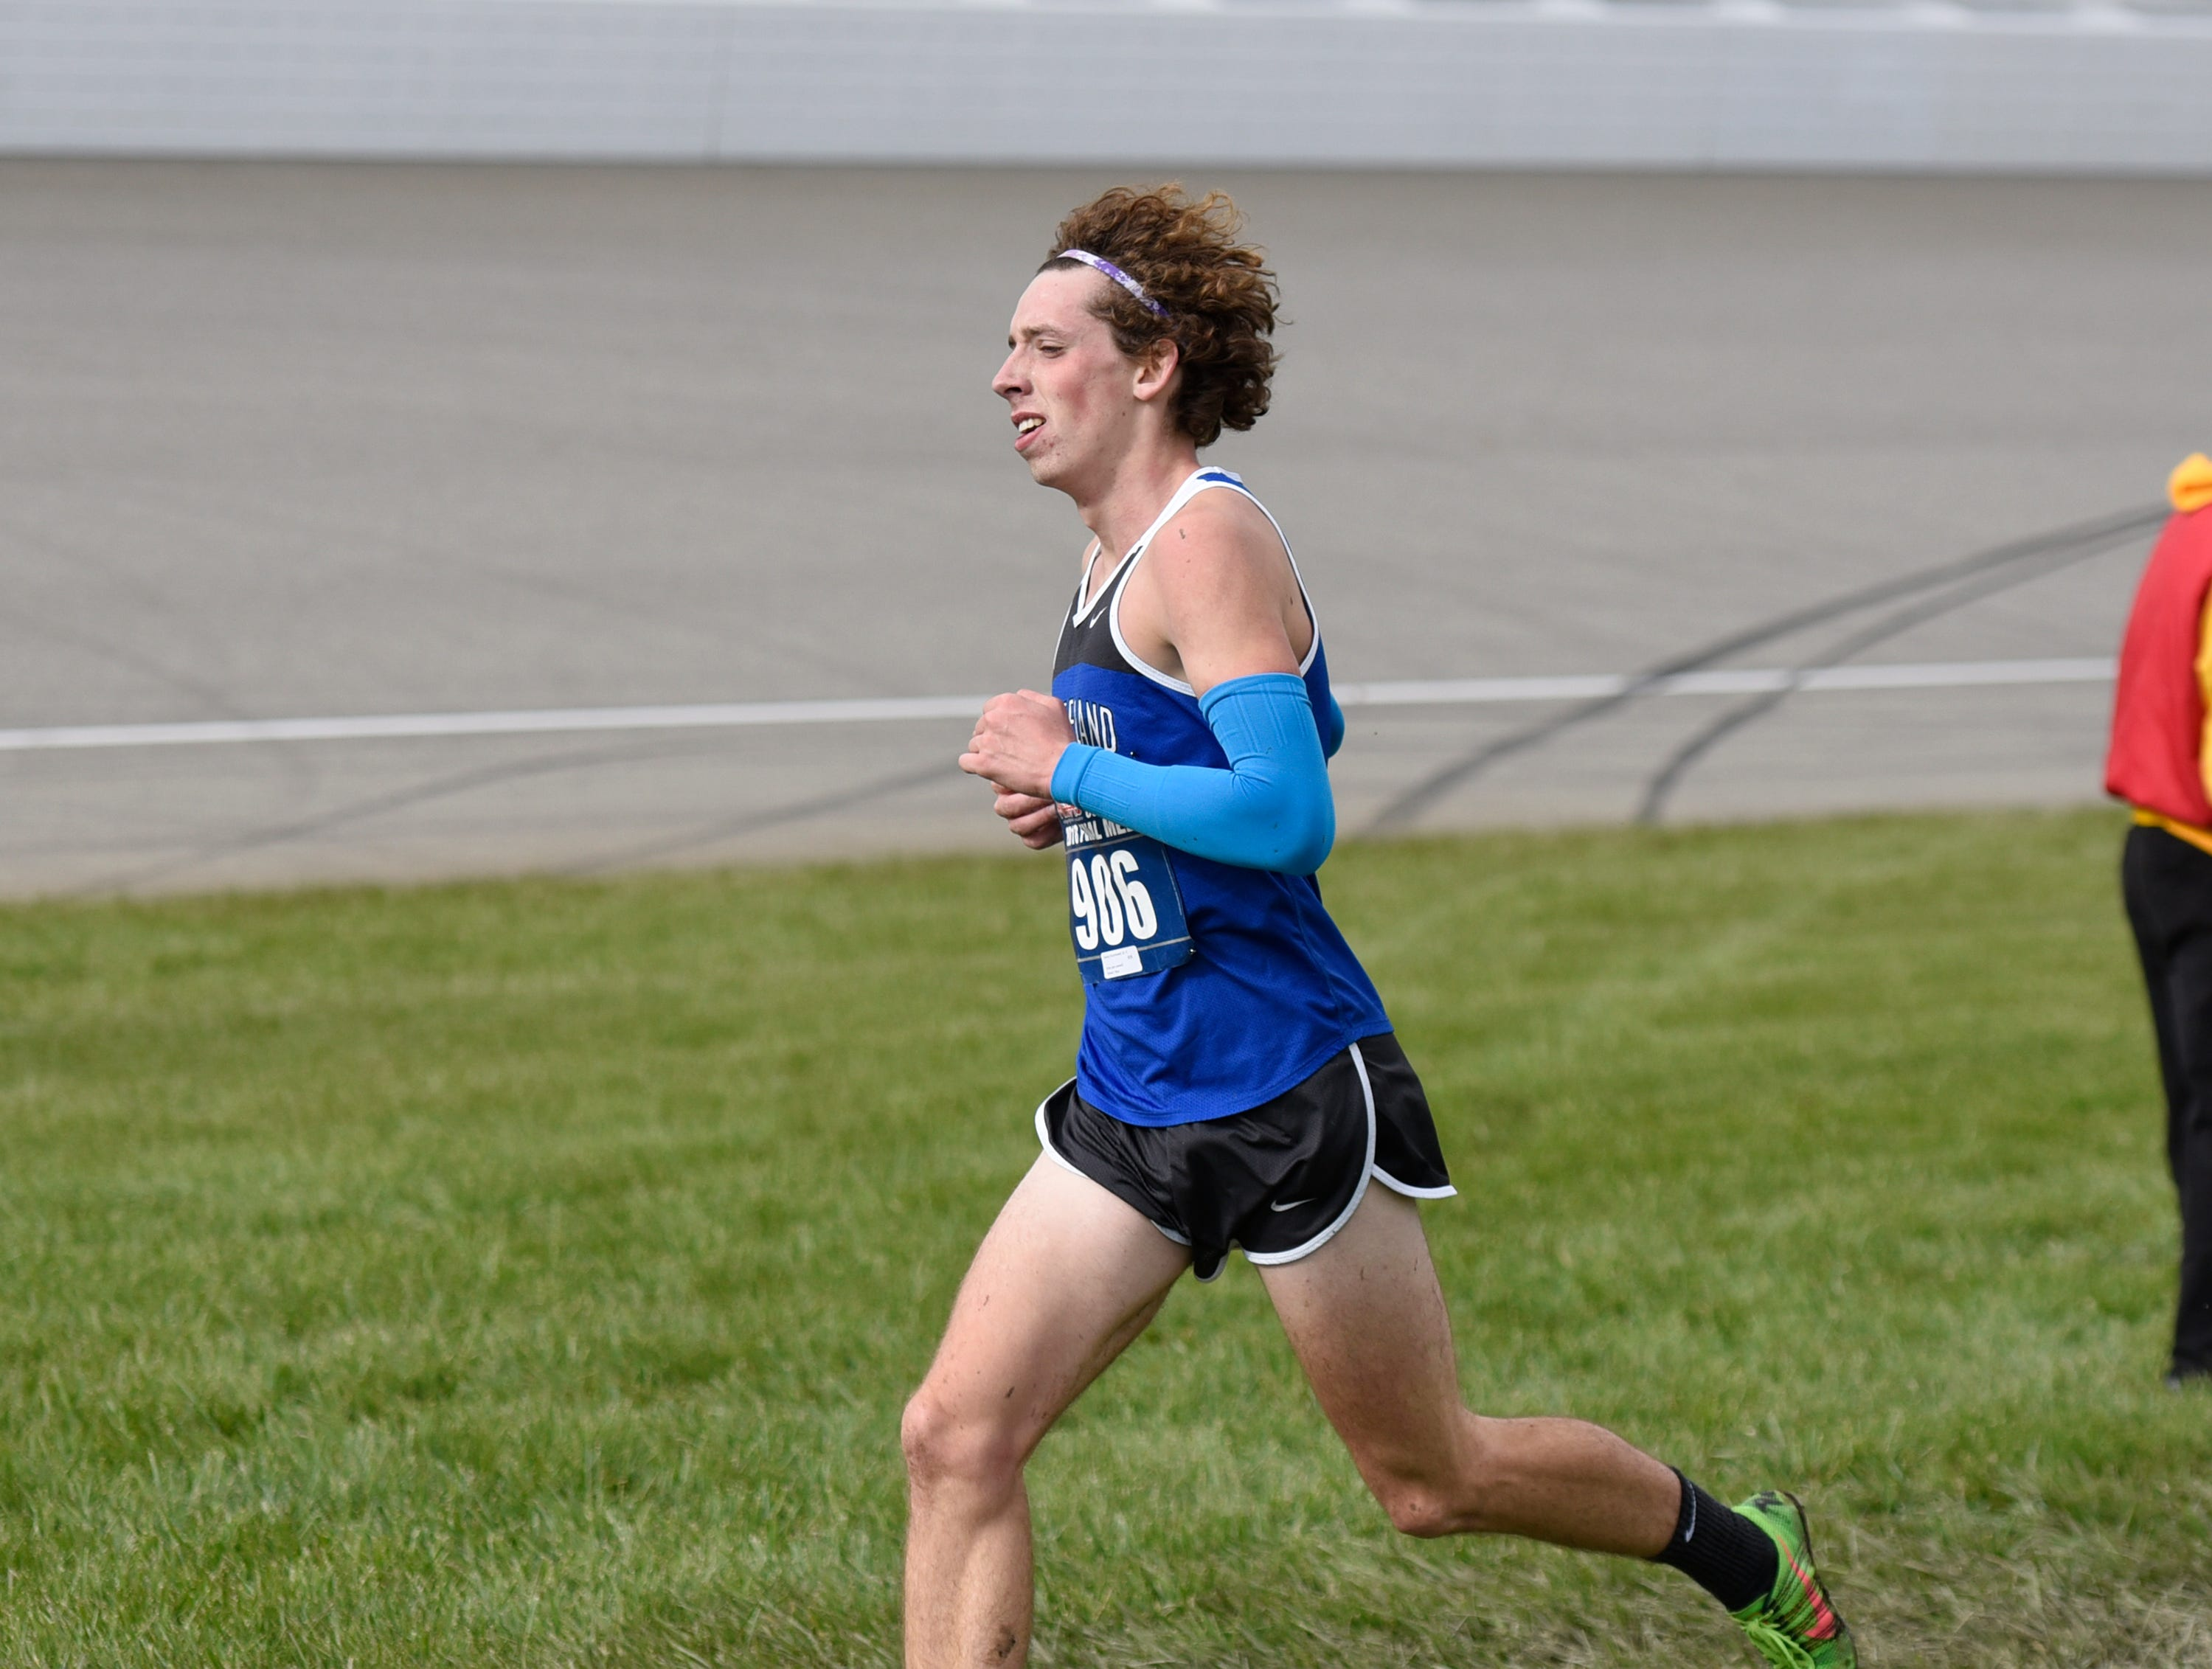 Lakeland's Harrison Grzymkowski running down the stretch for third place in 15:32.3 during the Division 1 2018 cross country finals at Michigan International Speedway.